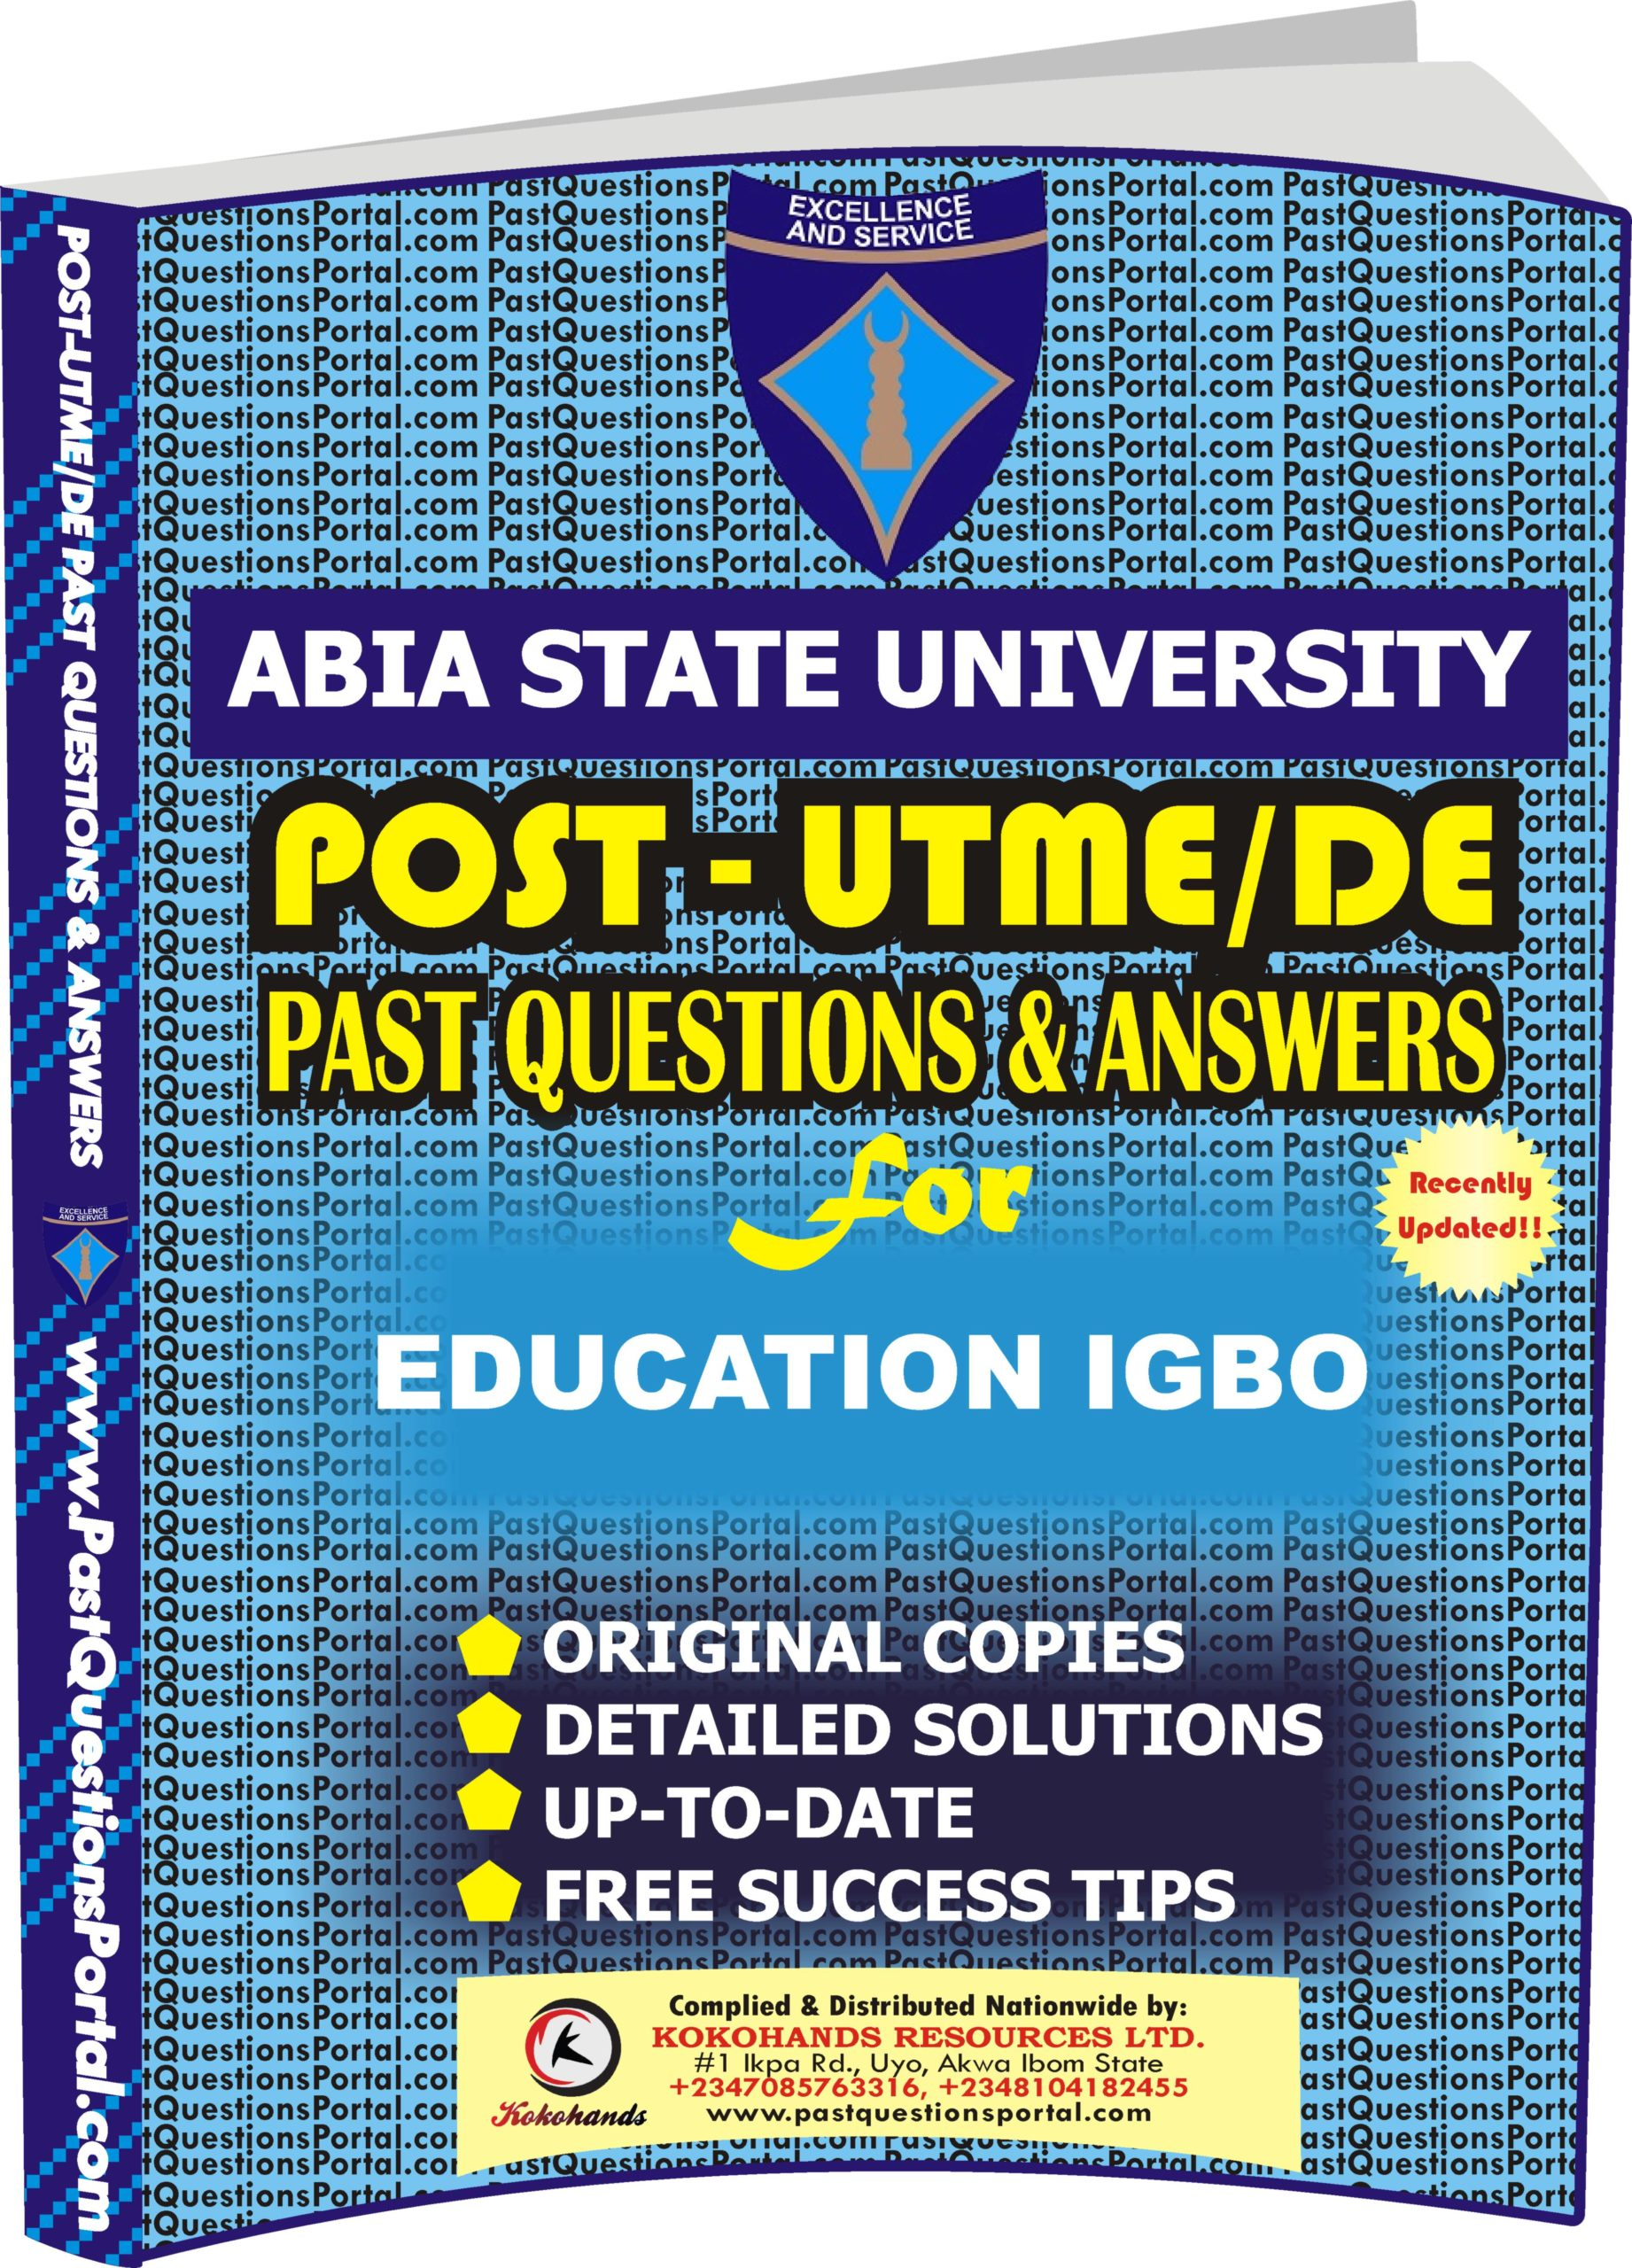 ABSU Post UTME Past Questions for EDUCATION IGBO